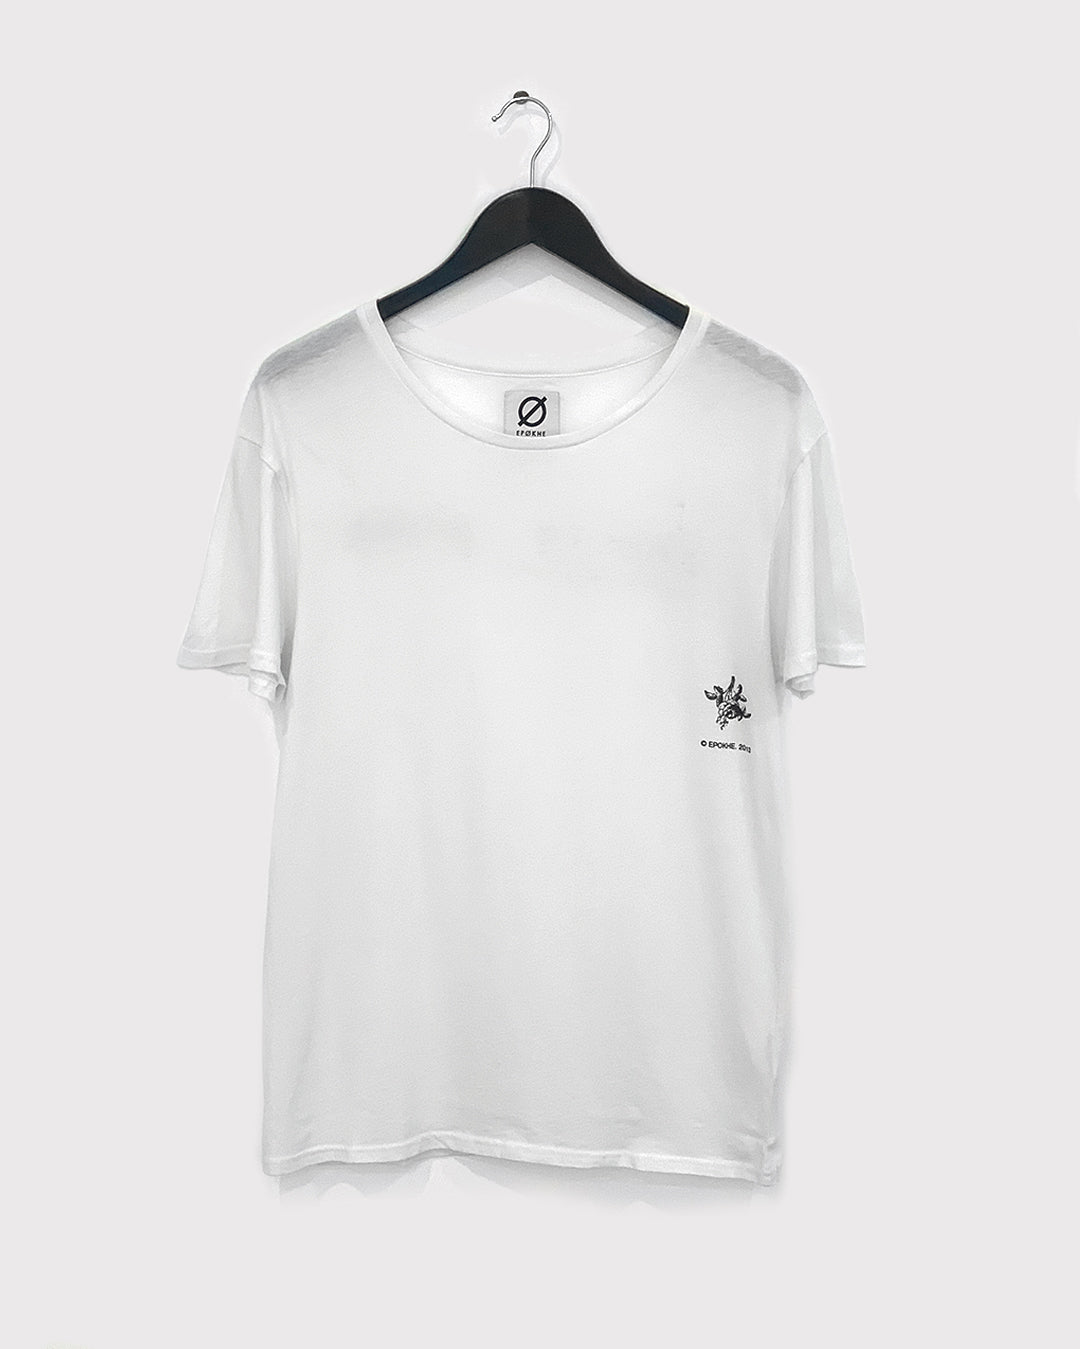 Beauty Pockets - Standard Fit Tee - White